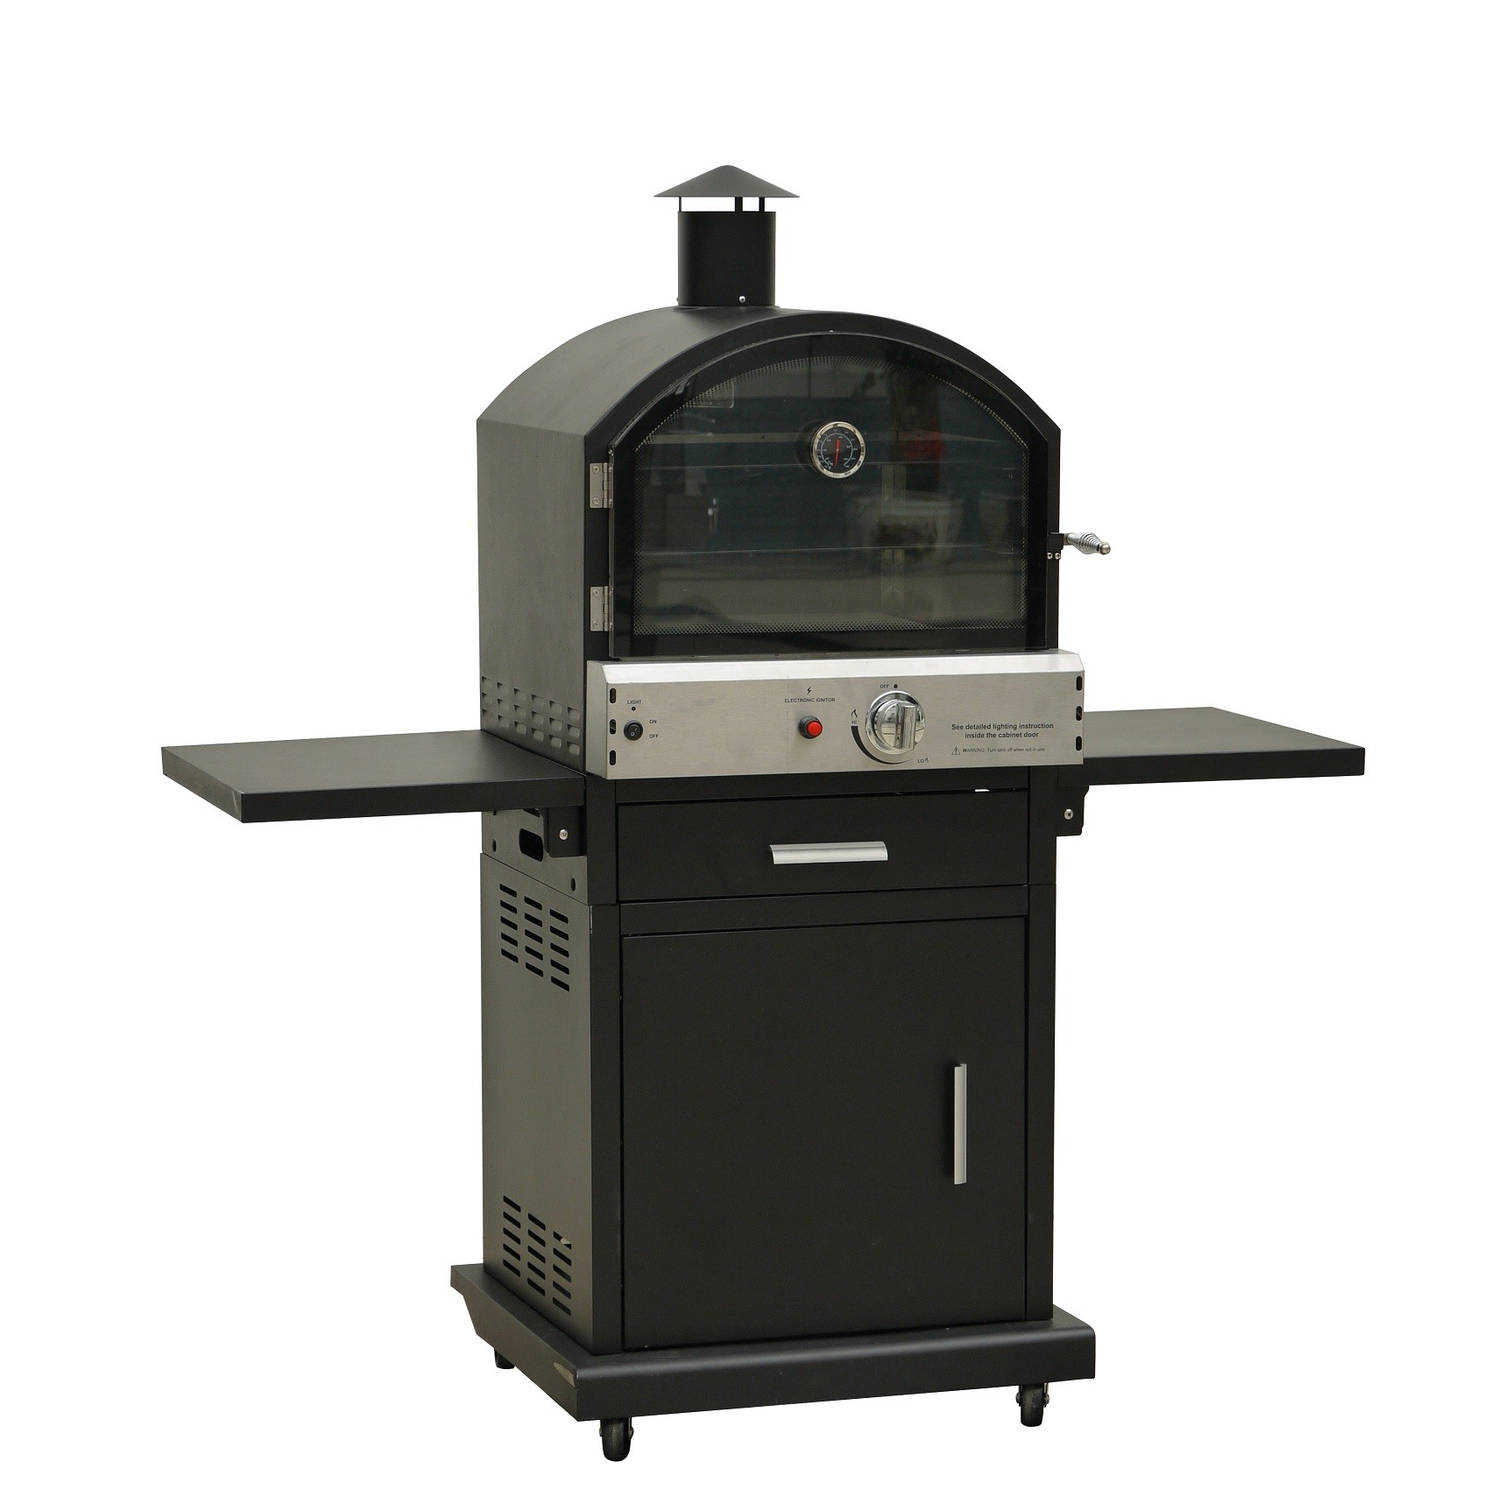 Justfire bbq gas pizza (pizza oven)